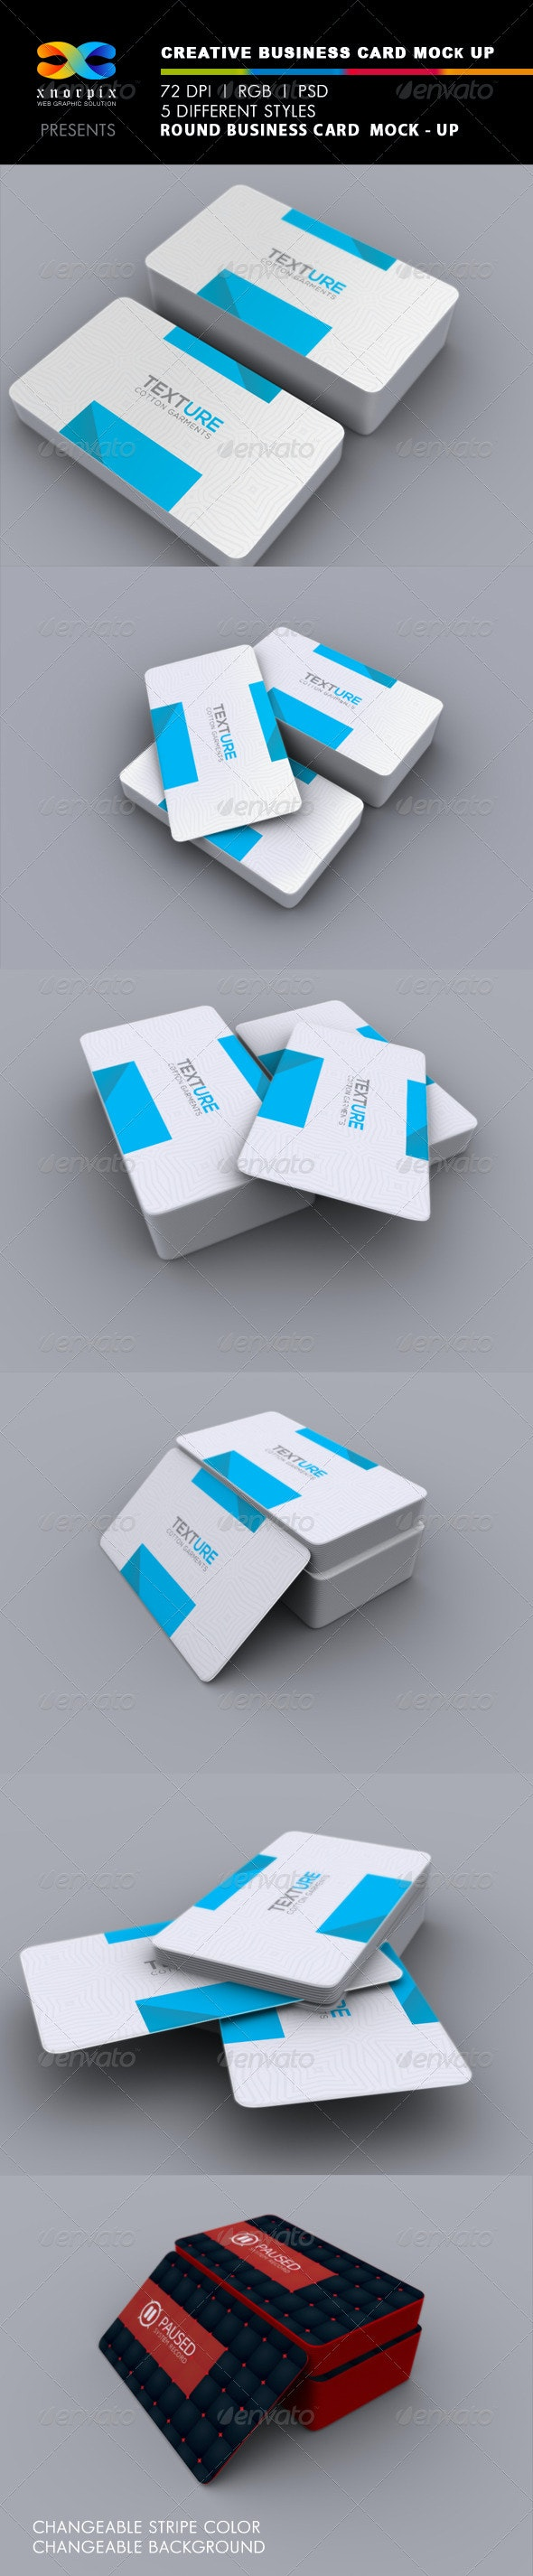 Realistic Round Corner Business Card Mock-up - Business Cards Print